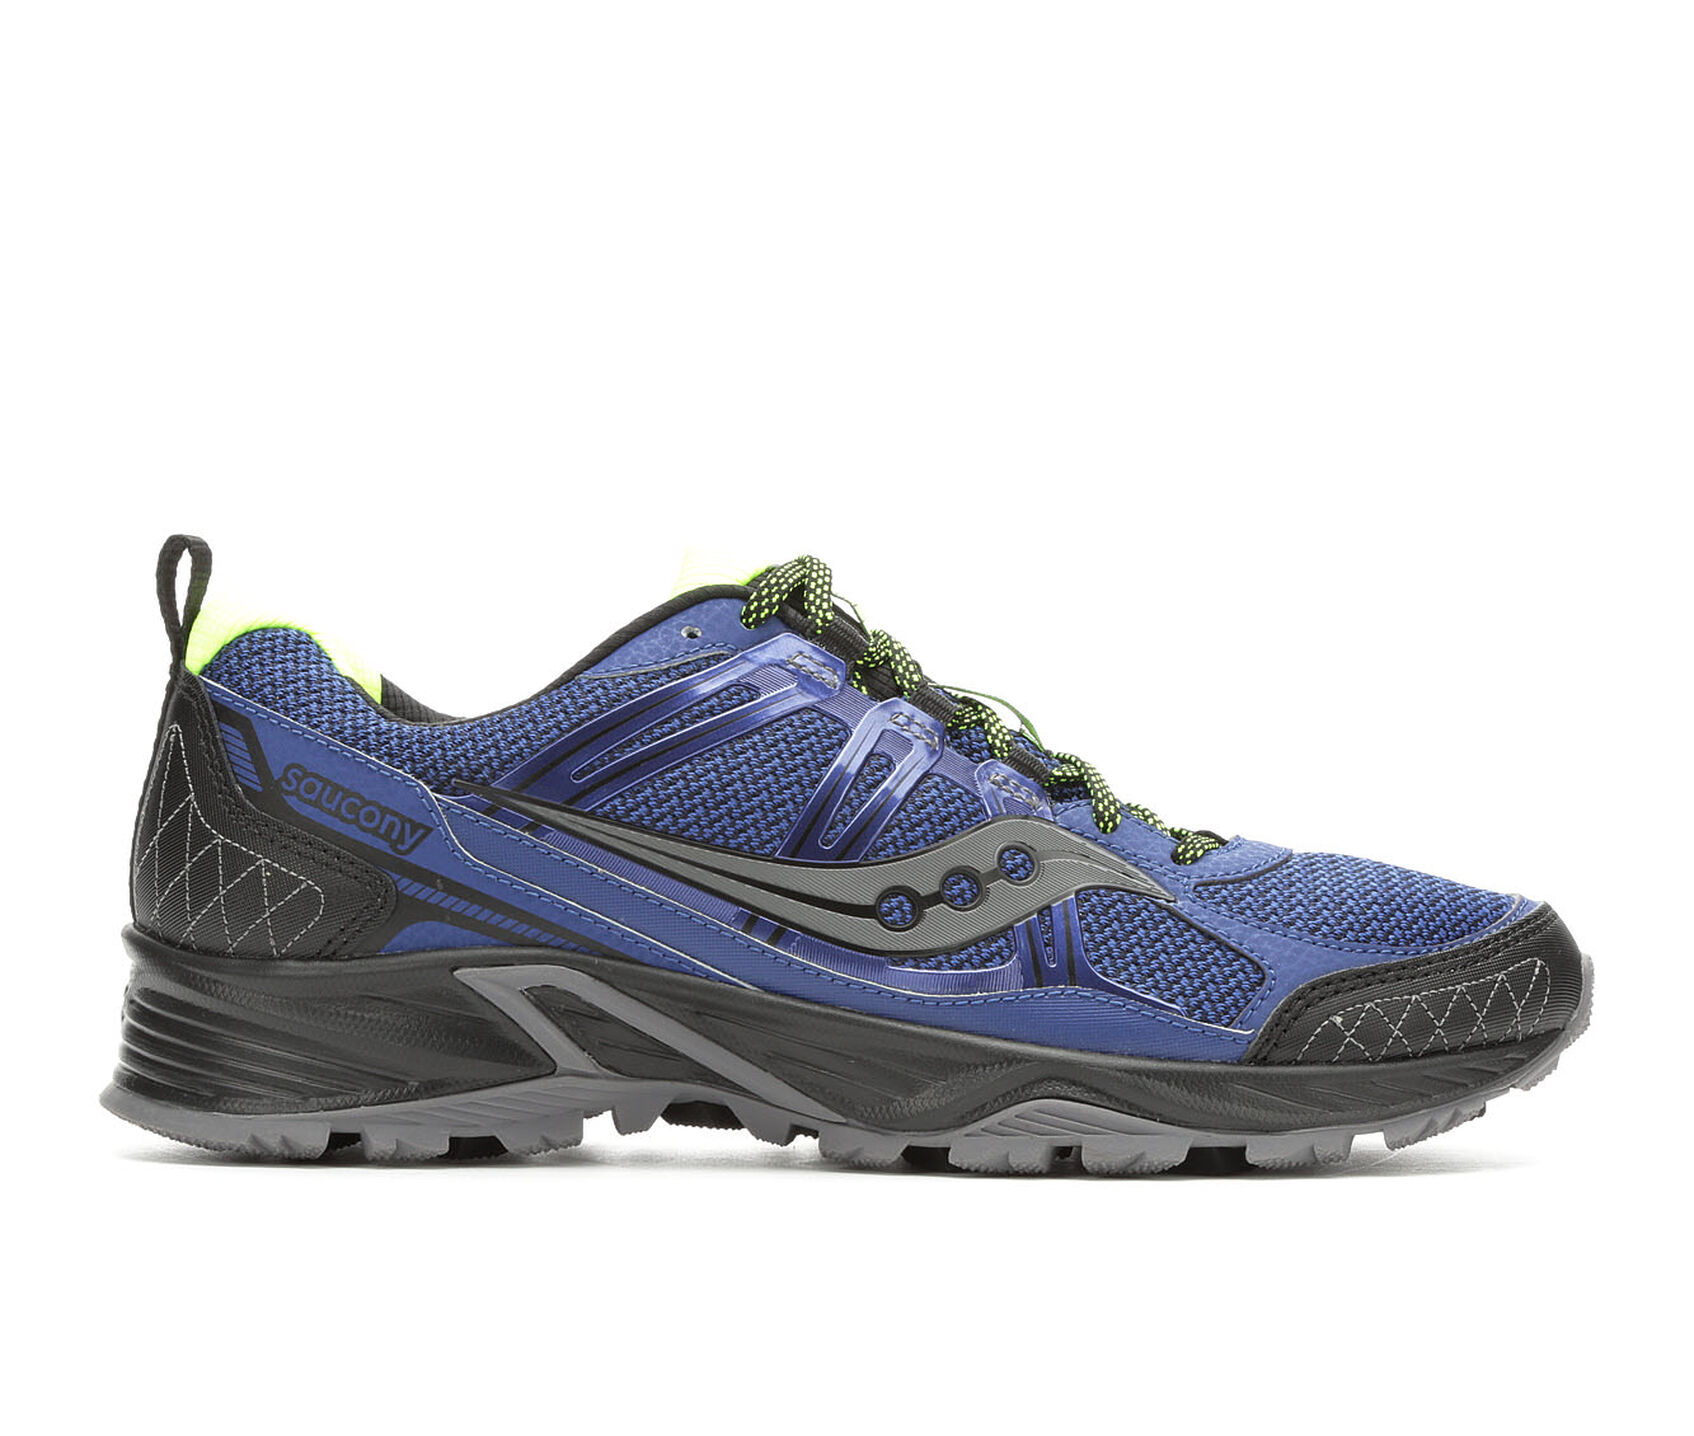 Men's Saucony Grid Eclipse TR 4 Trail Running Shoes | Shoe Carnival